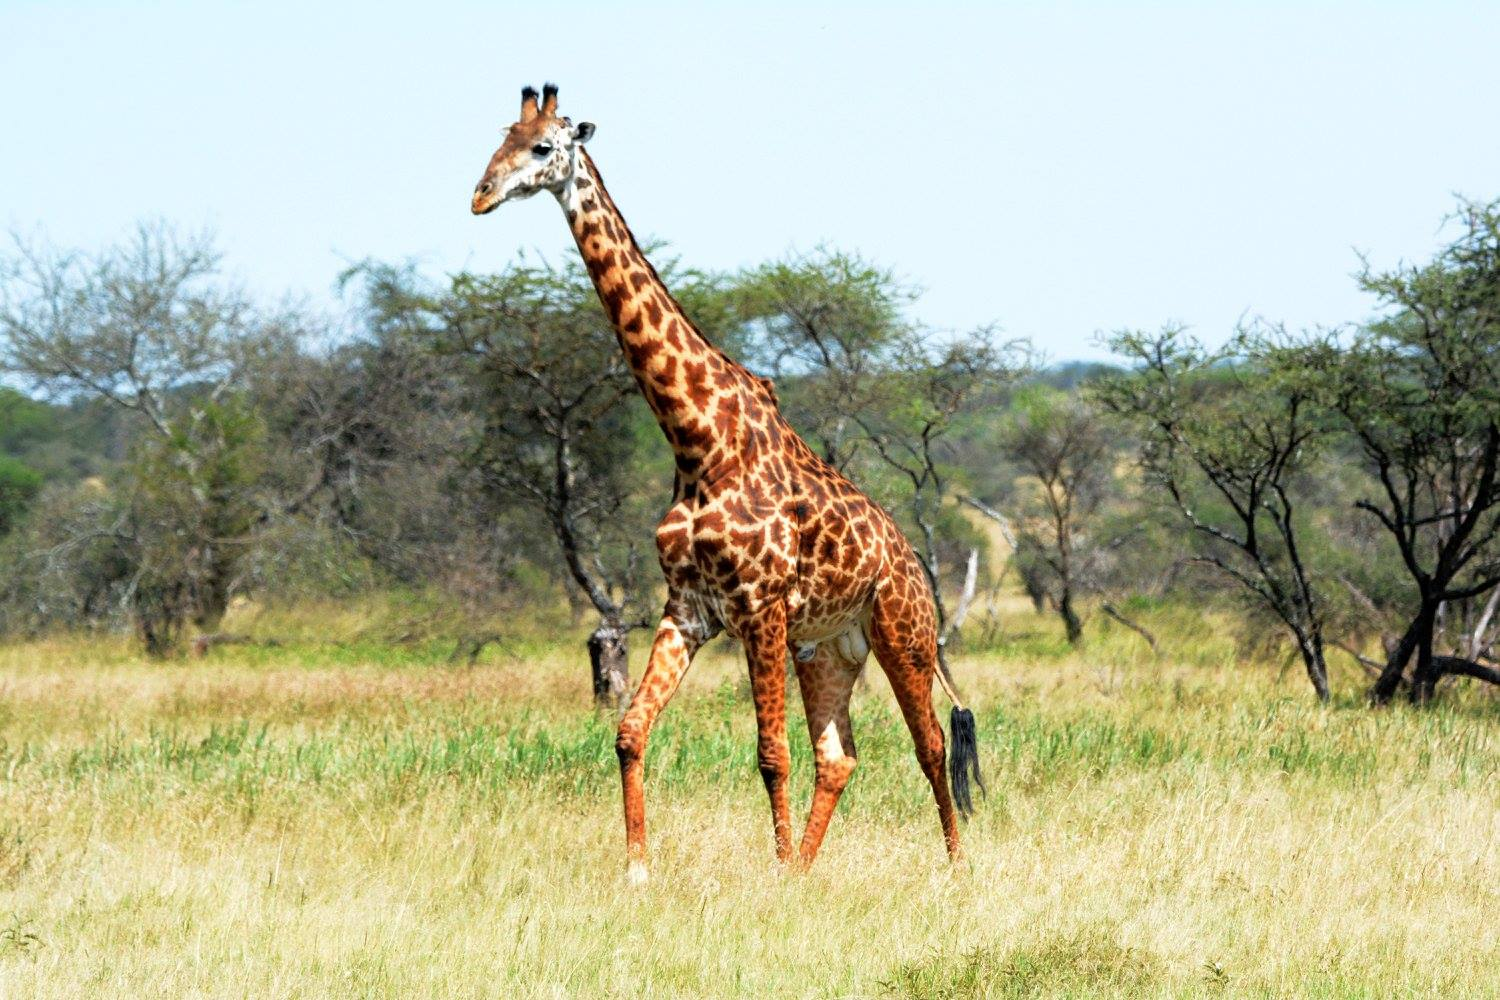 A new study has found that there may be four distinct species of giraffes that do not interbreed in the wild. Photo by Udayan Dasgupta.